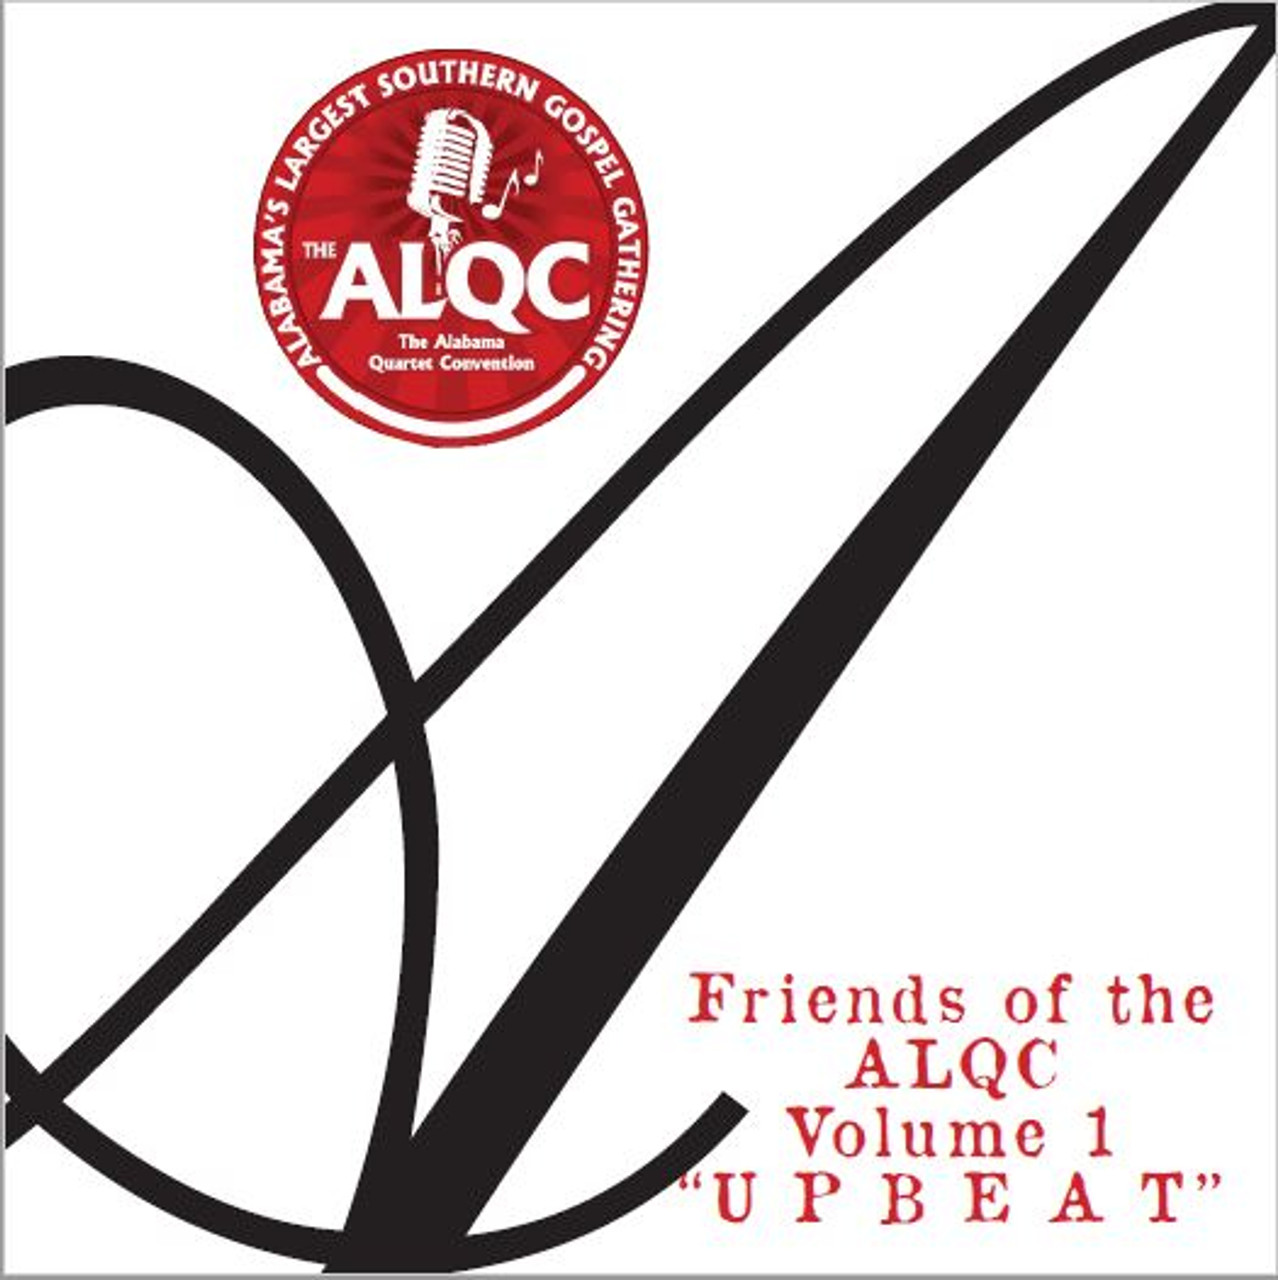 This is the first compilation disc put together by The Alabama Quartet Convention.  All 20 songs are upbeat; there are no slow songs on this disc.